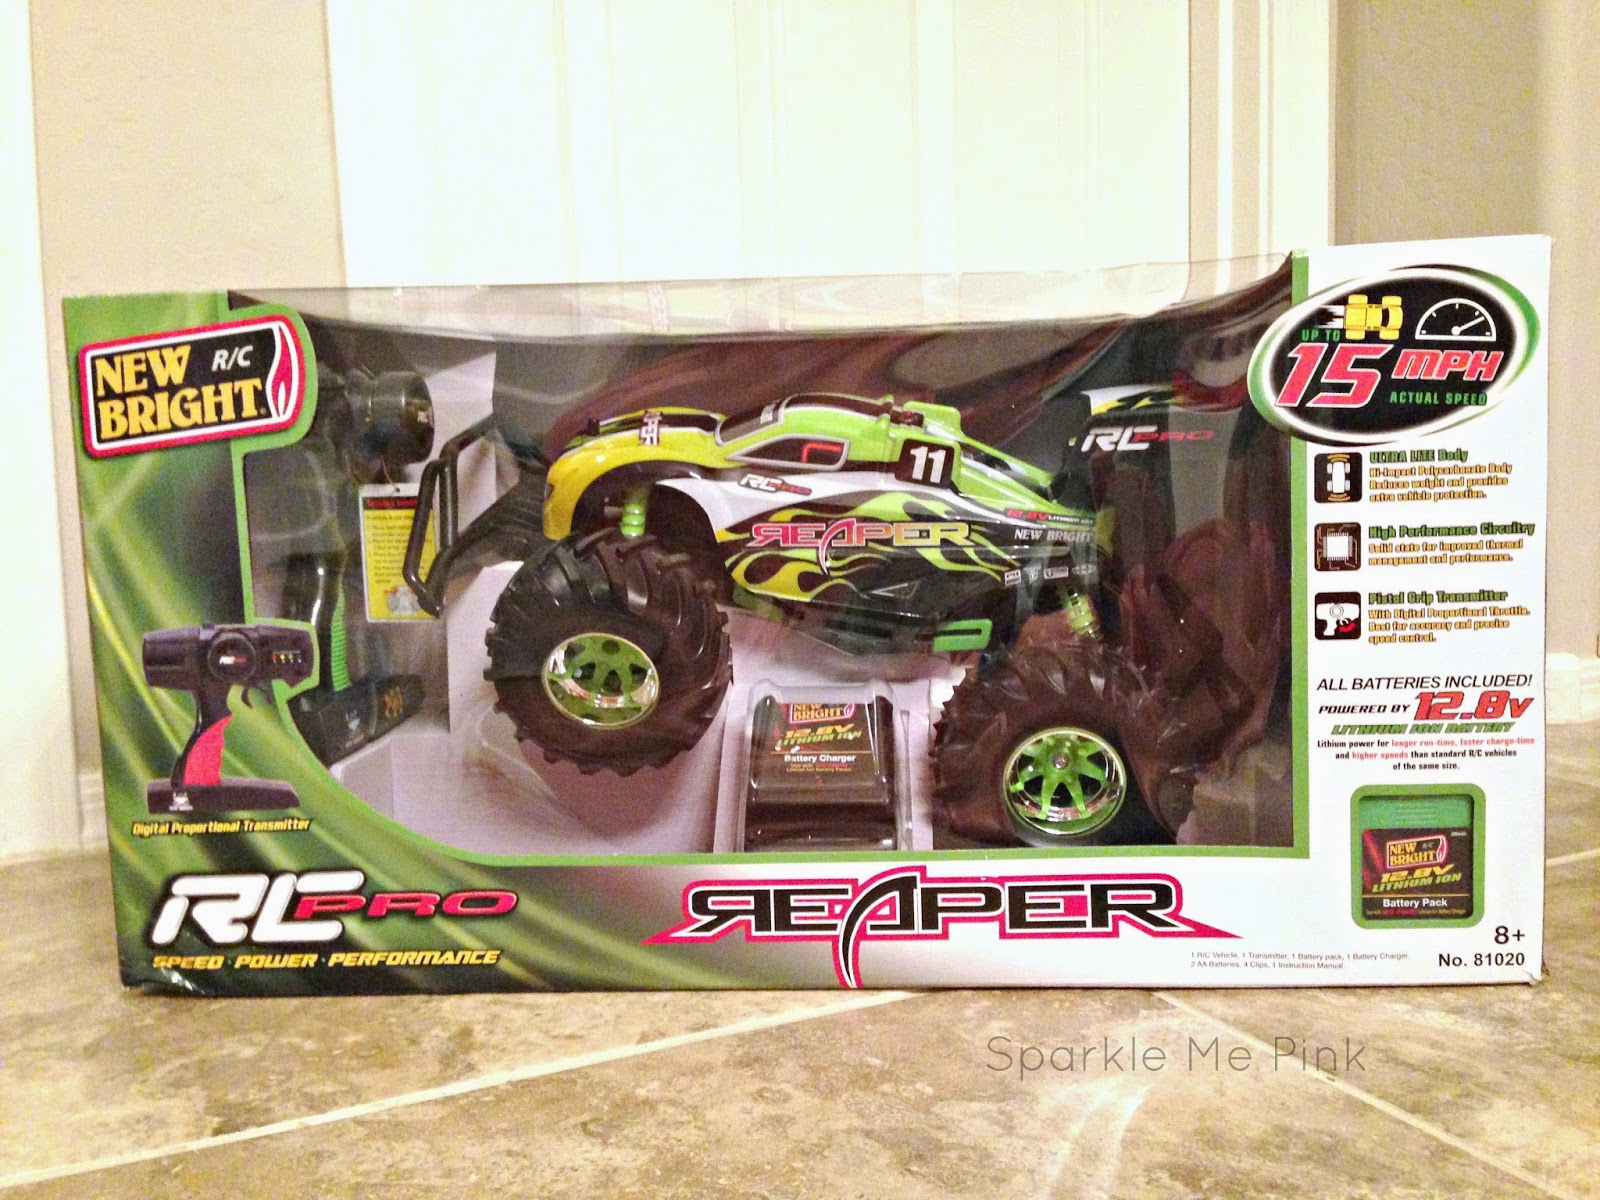 Sparkle Me Pink: New Bright R/C Pro Reaper REVIEW : HOT Toys of 2014